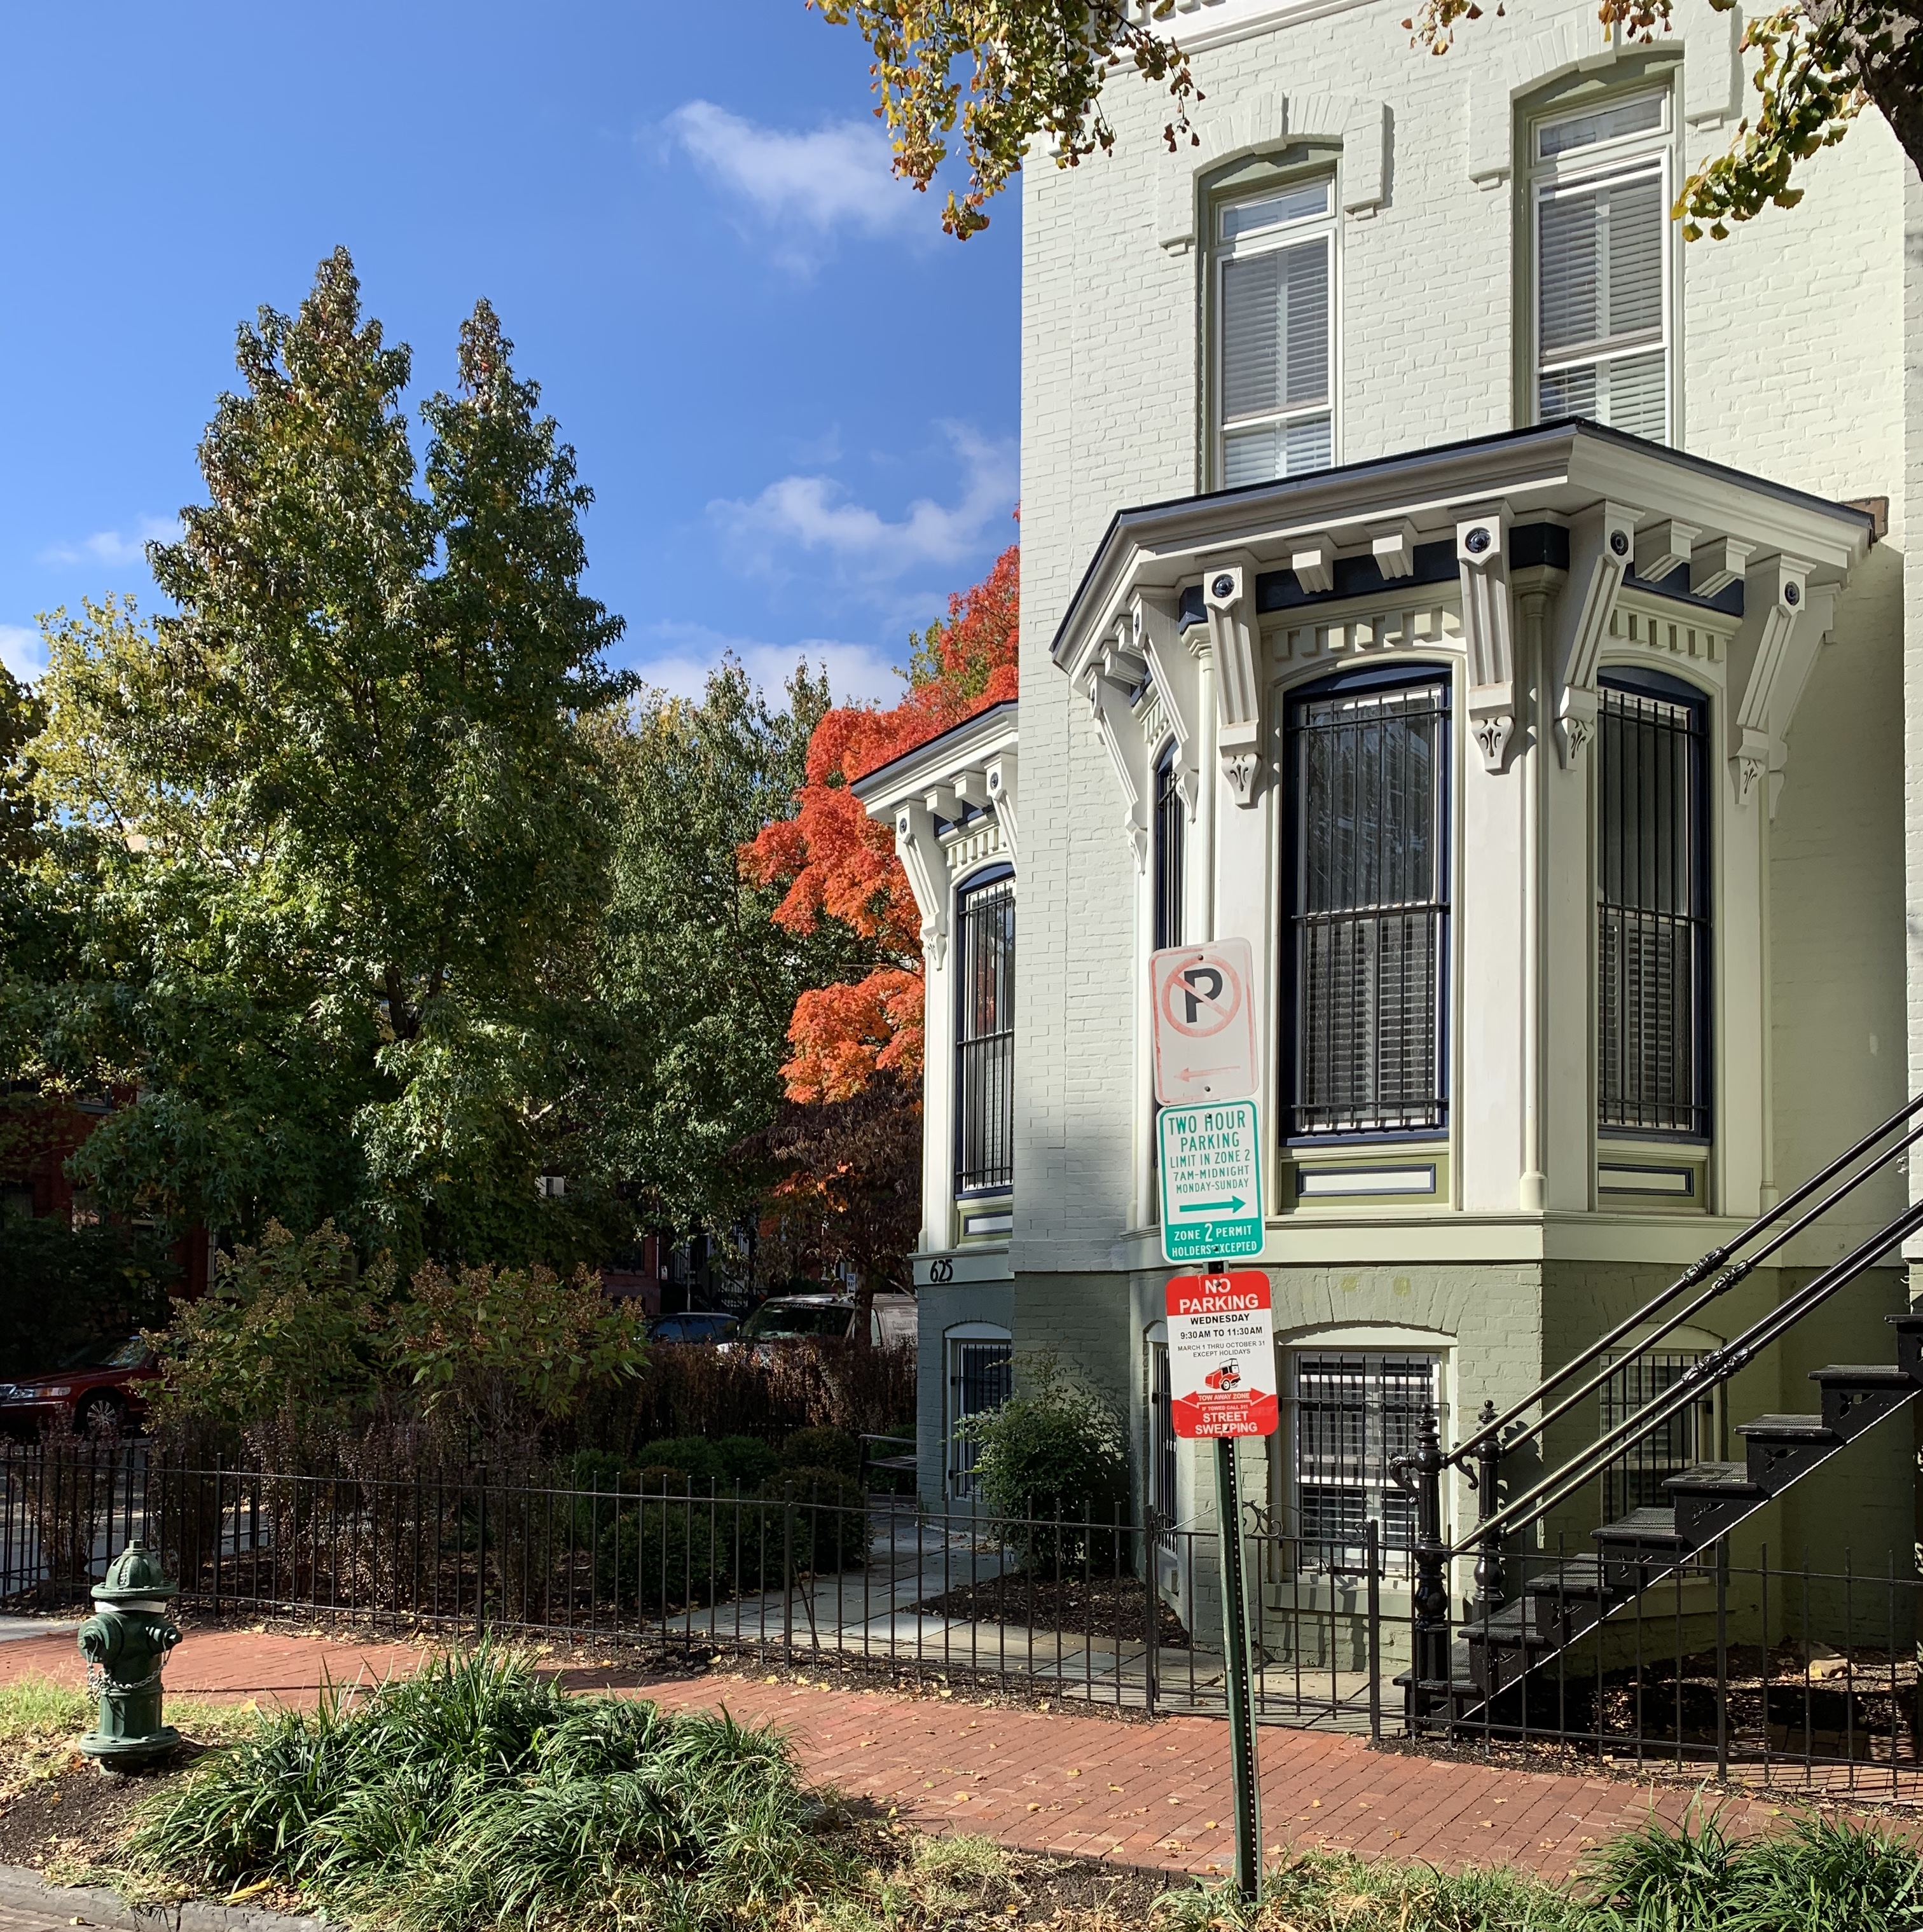 Washington, DC Luxury Real Estate & Homes For Sale. Marion Street in Shaw. Artyom Shmatko Luxury Real Estate Agent.